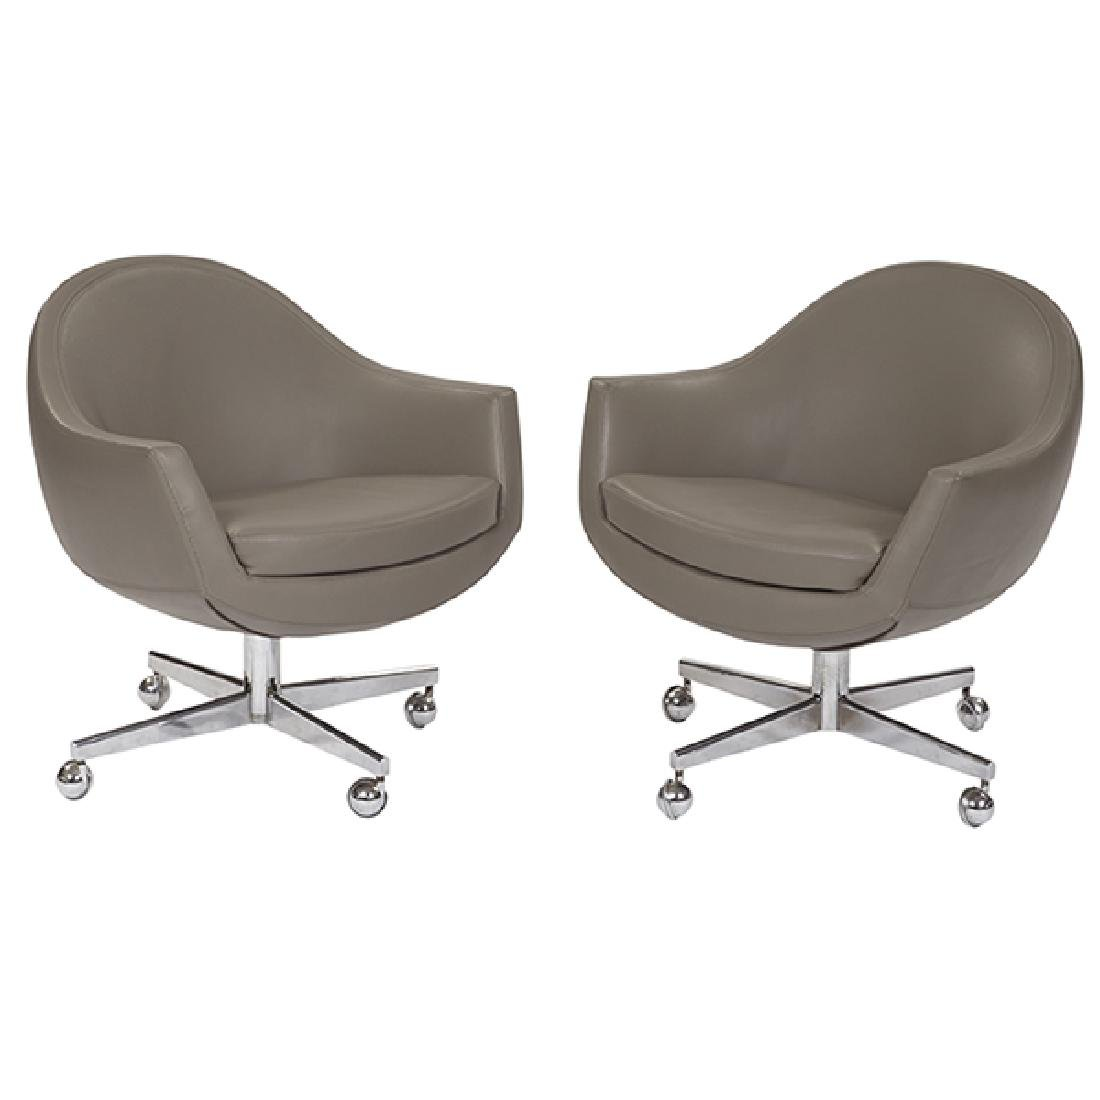 """1960s lounge chairs, pair 29.5""""w x 24""""d x 31""""h"""